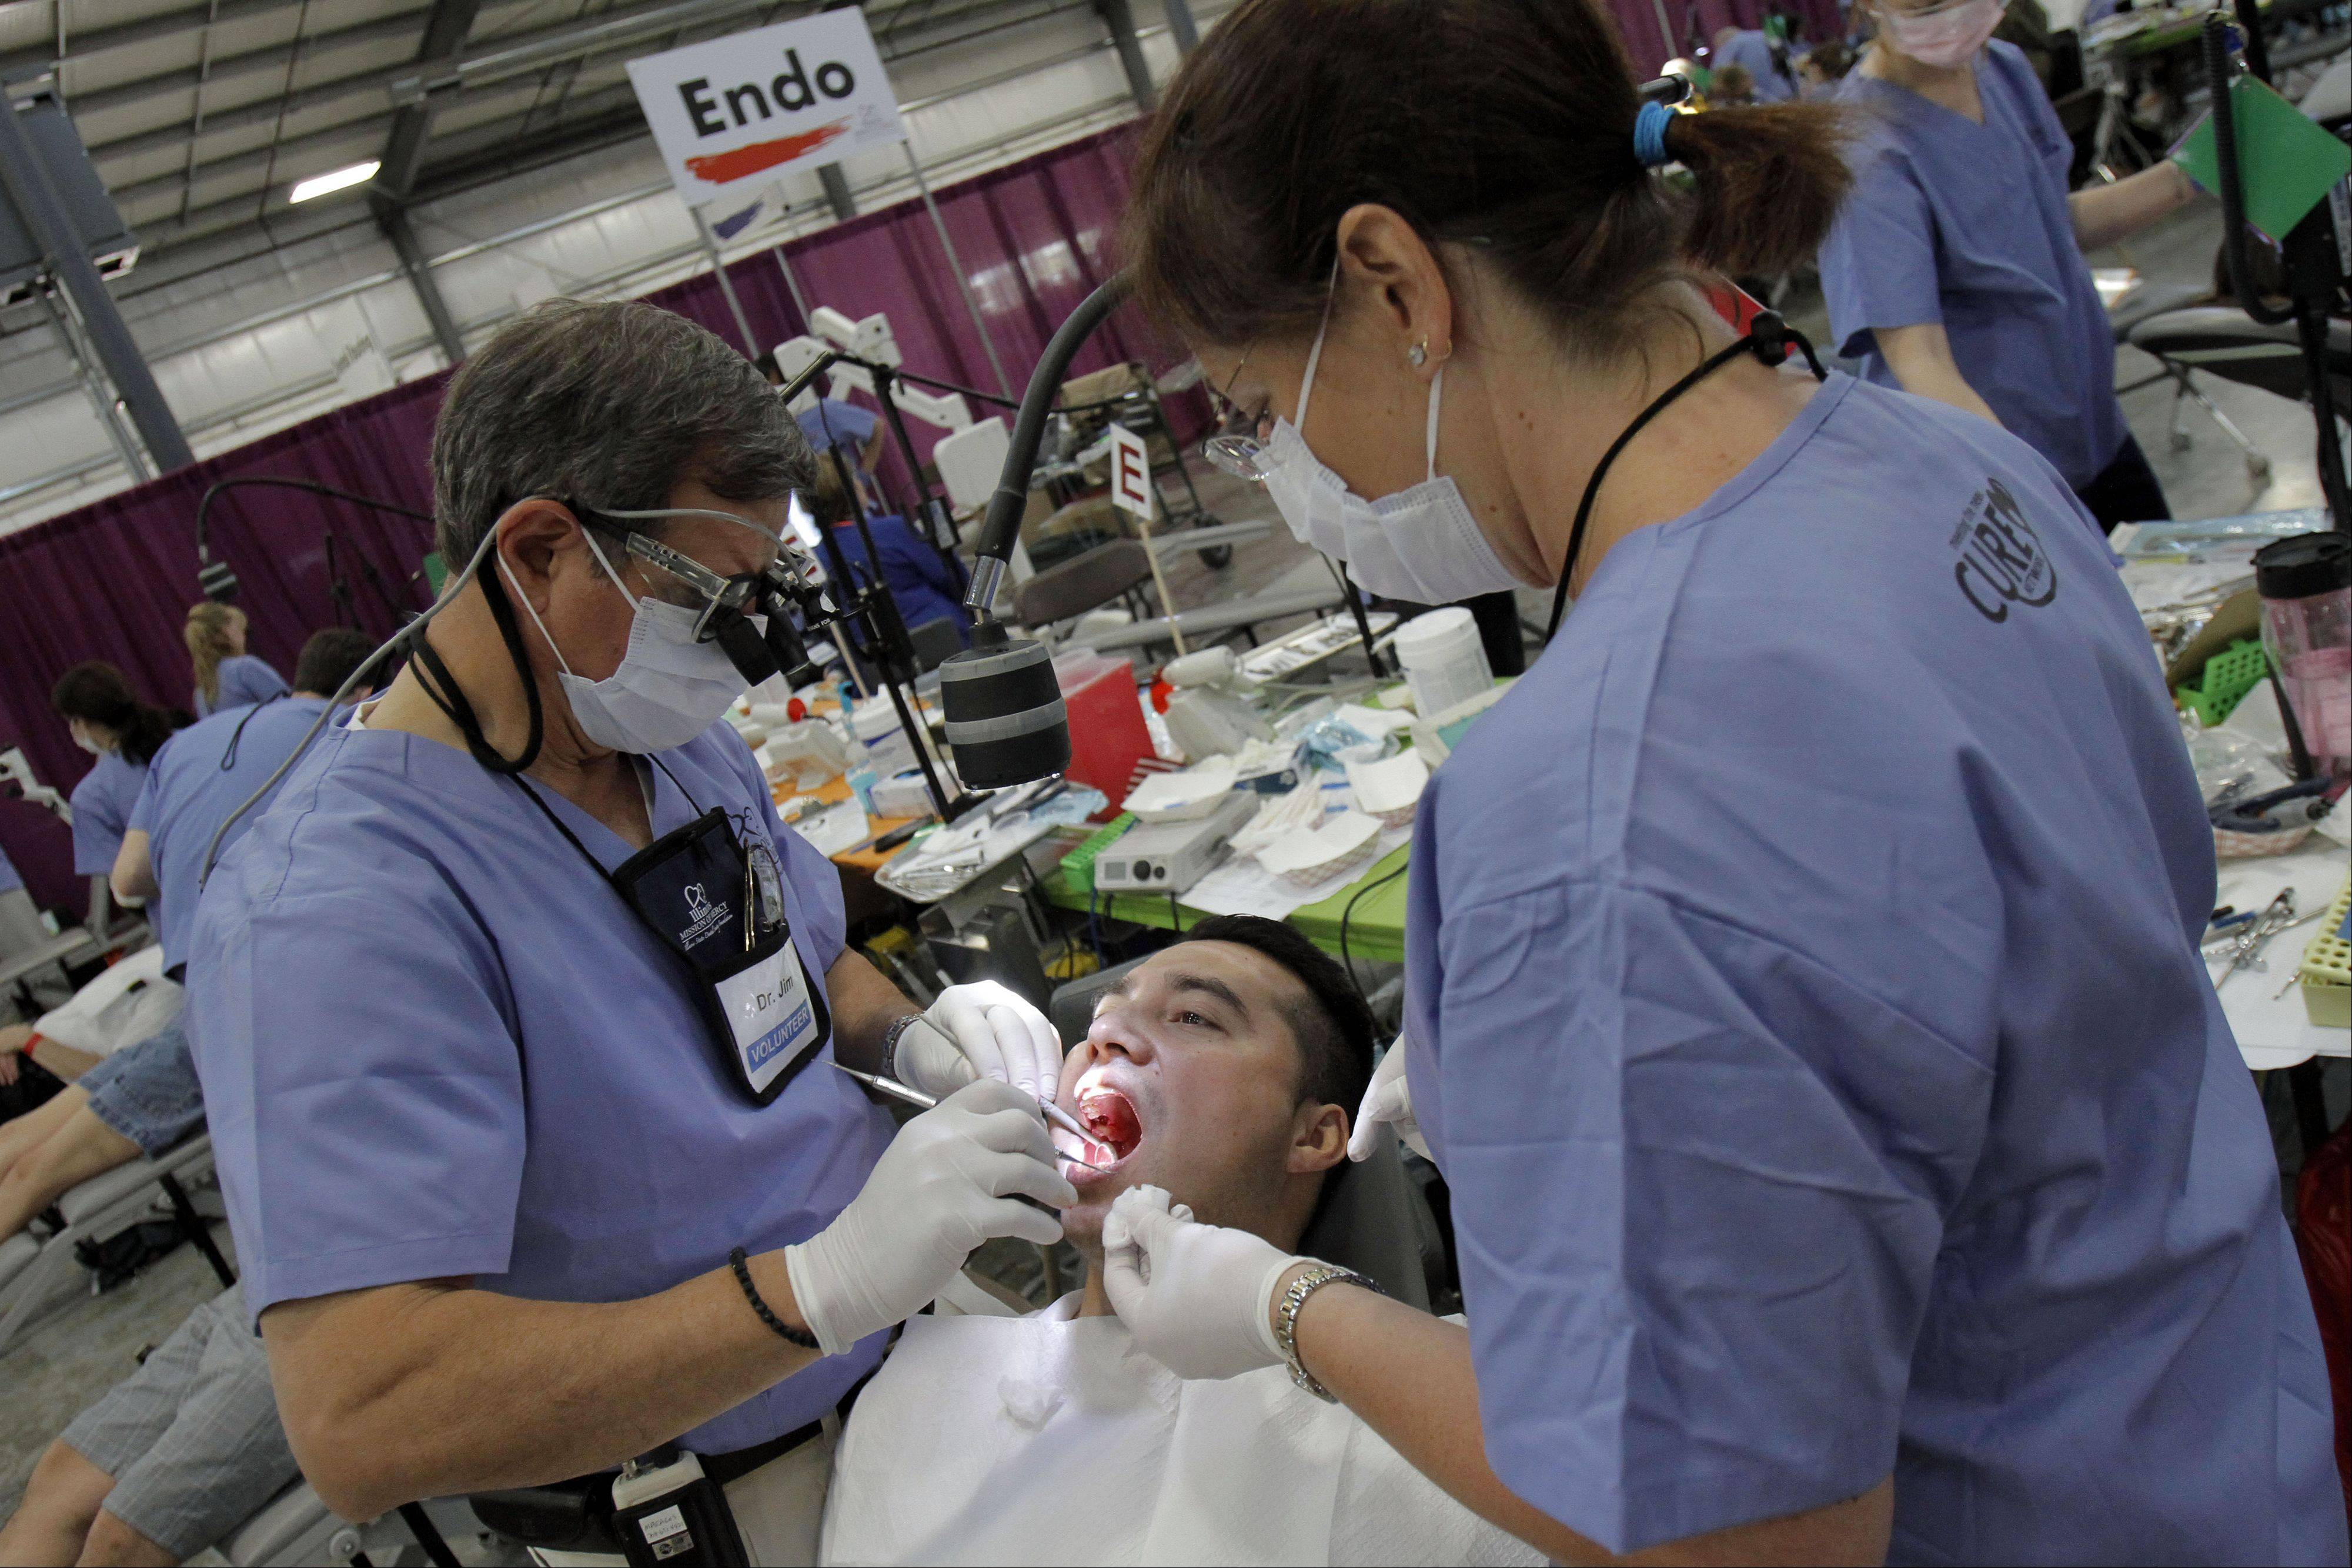 Rojelia Reyes of Waukegan has some dental work done Friday by Dr. Jim Maragos, left, and hygienist Barbara Cervantes at the Lake County Fairgrounds in Grayslake. Volunteers expected to provide an estimated $1 million in free medical, dental and vision care through today during what's called the Mission of Mercy.